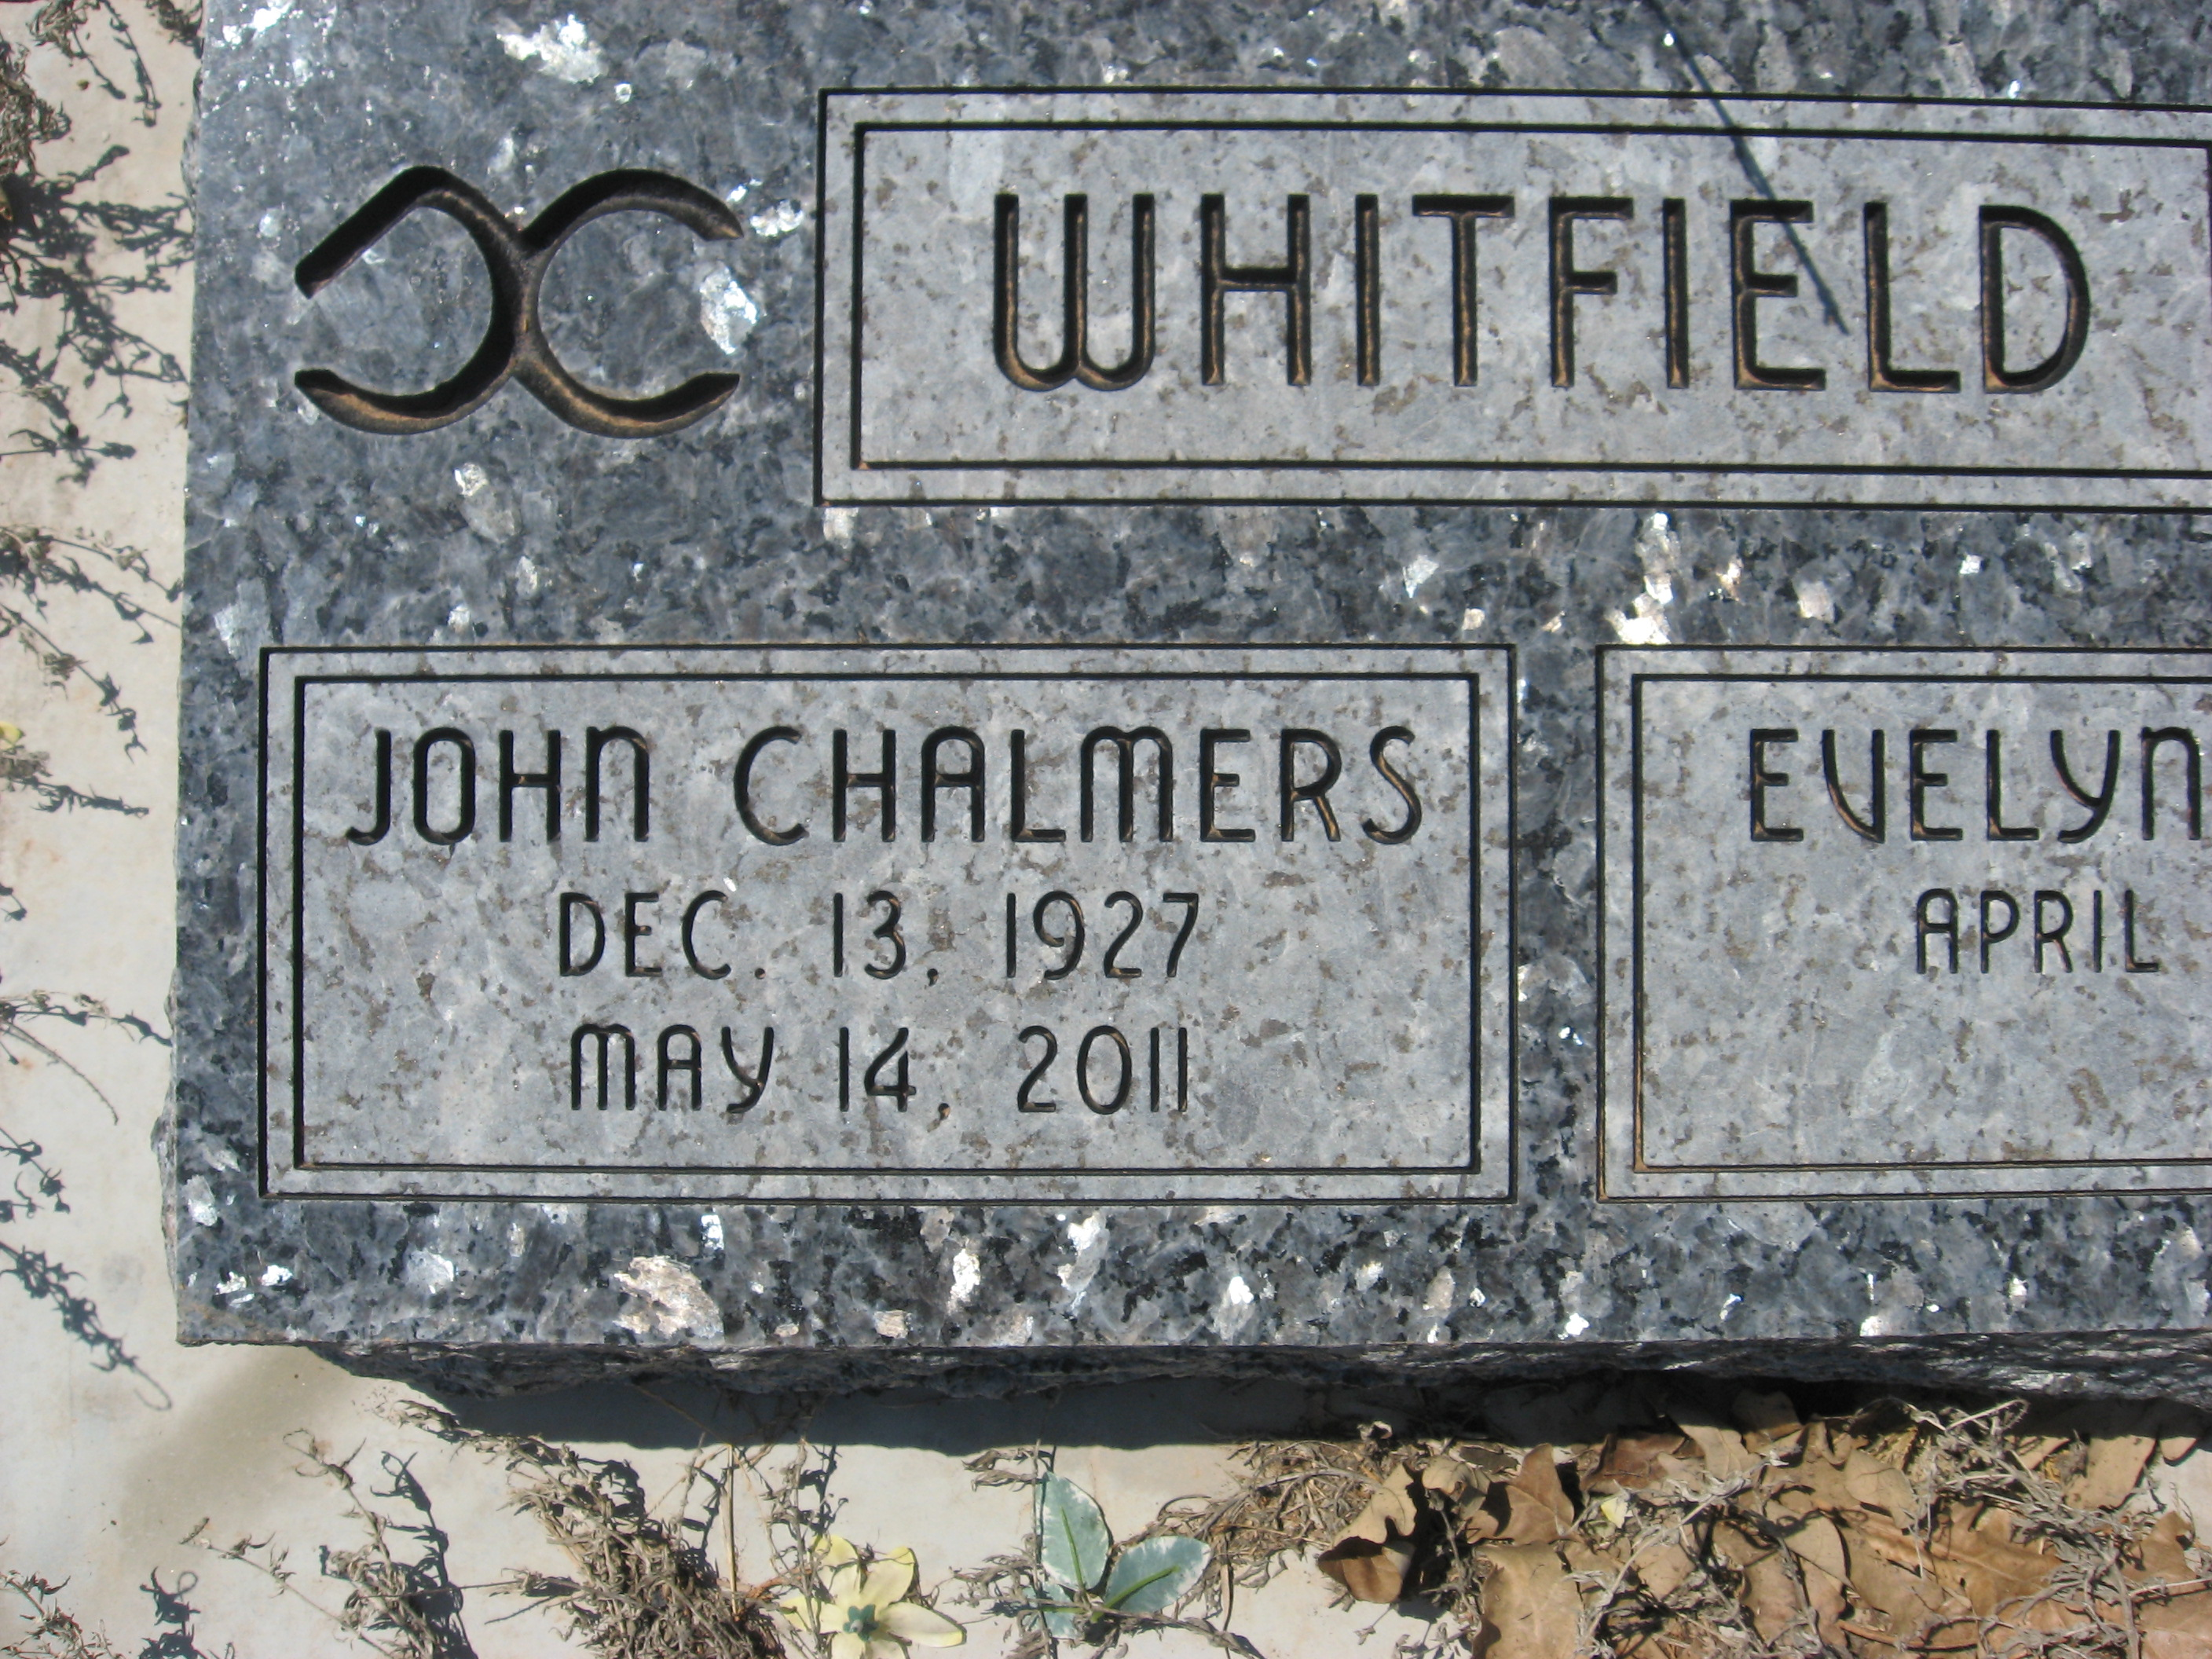 John Chalmers Whitfield